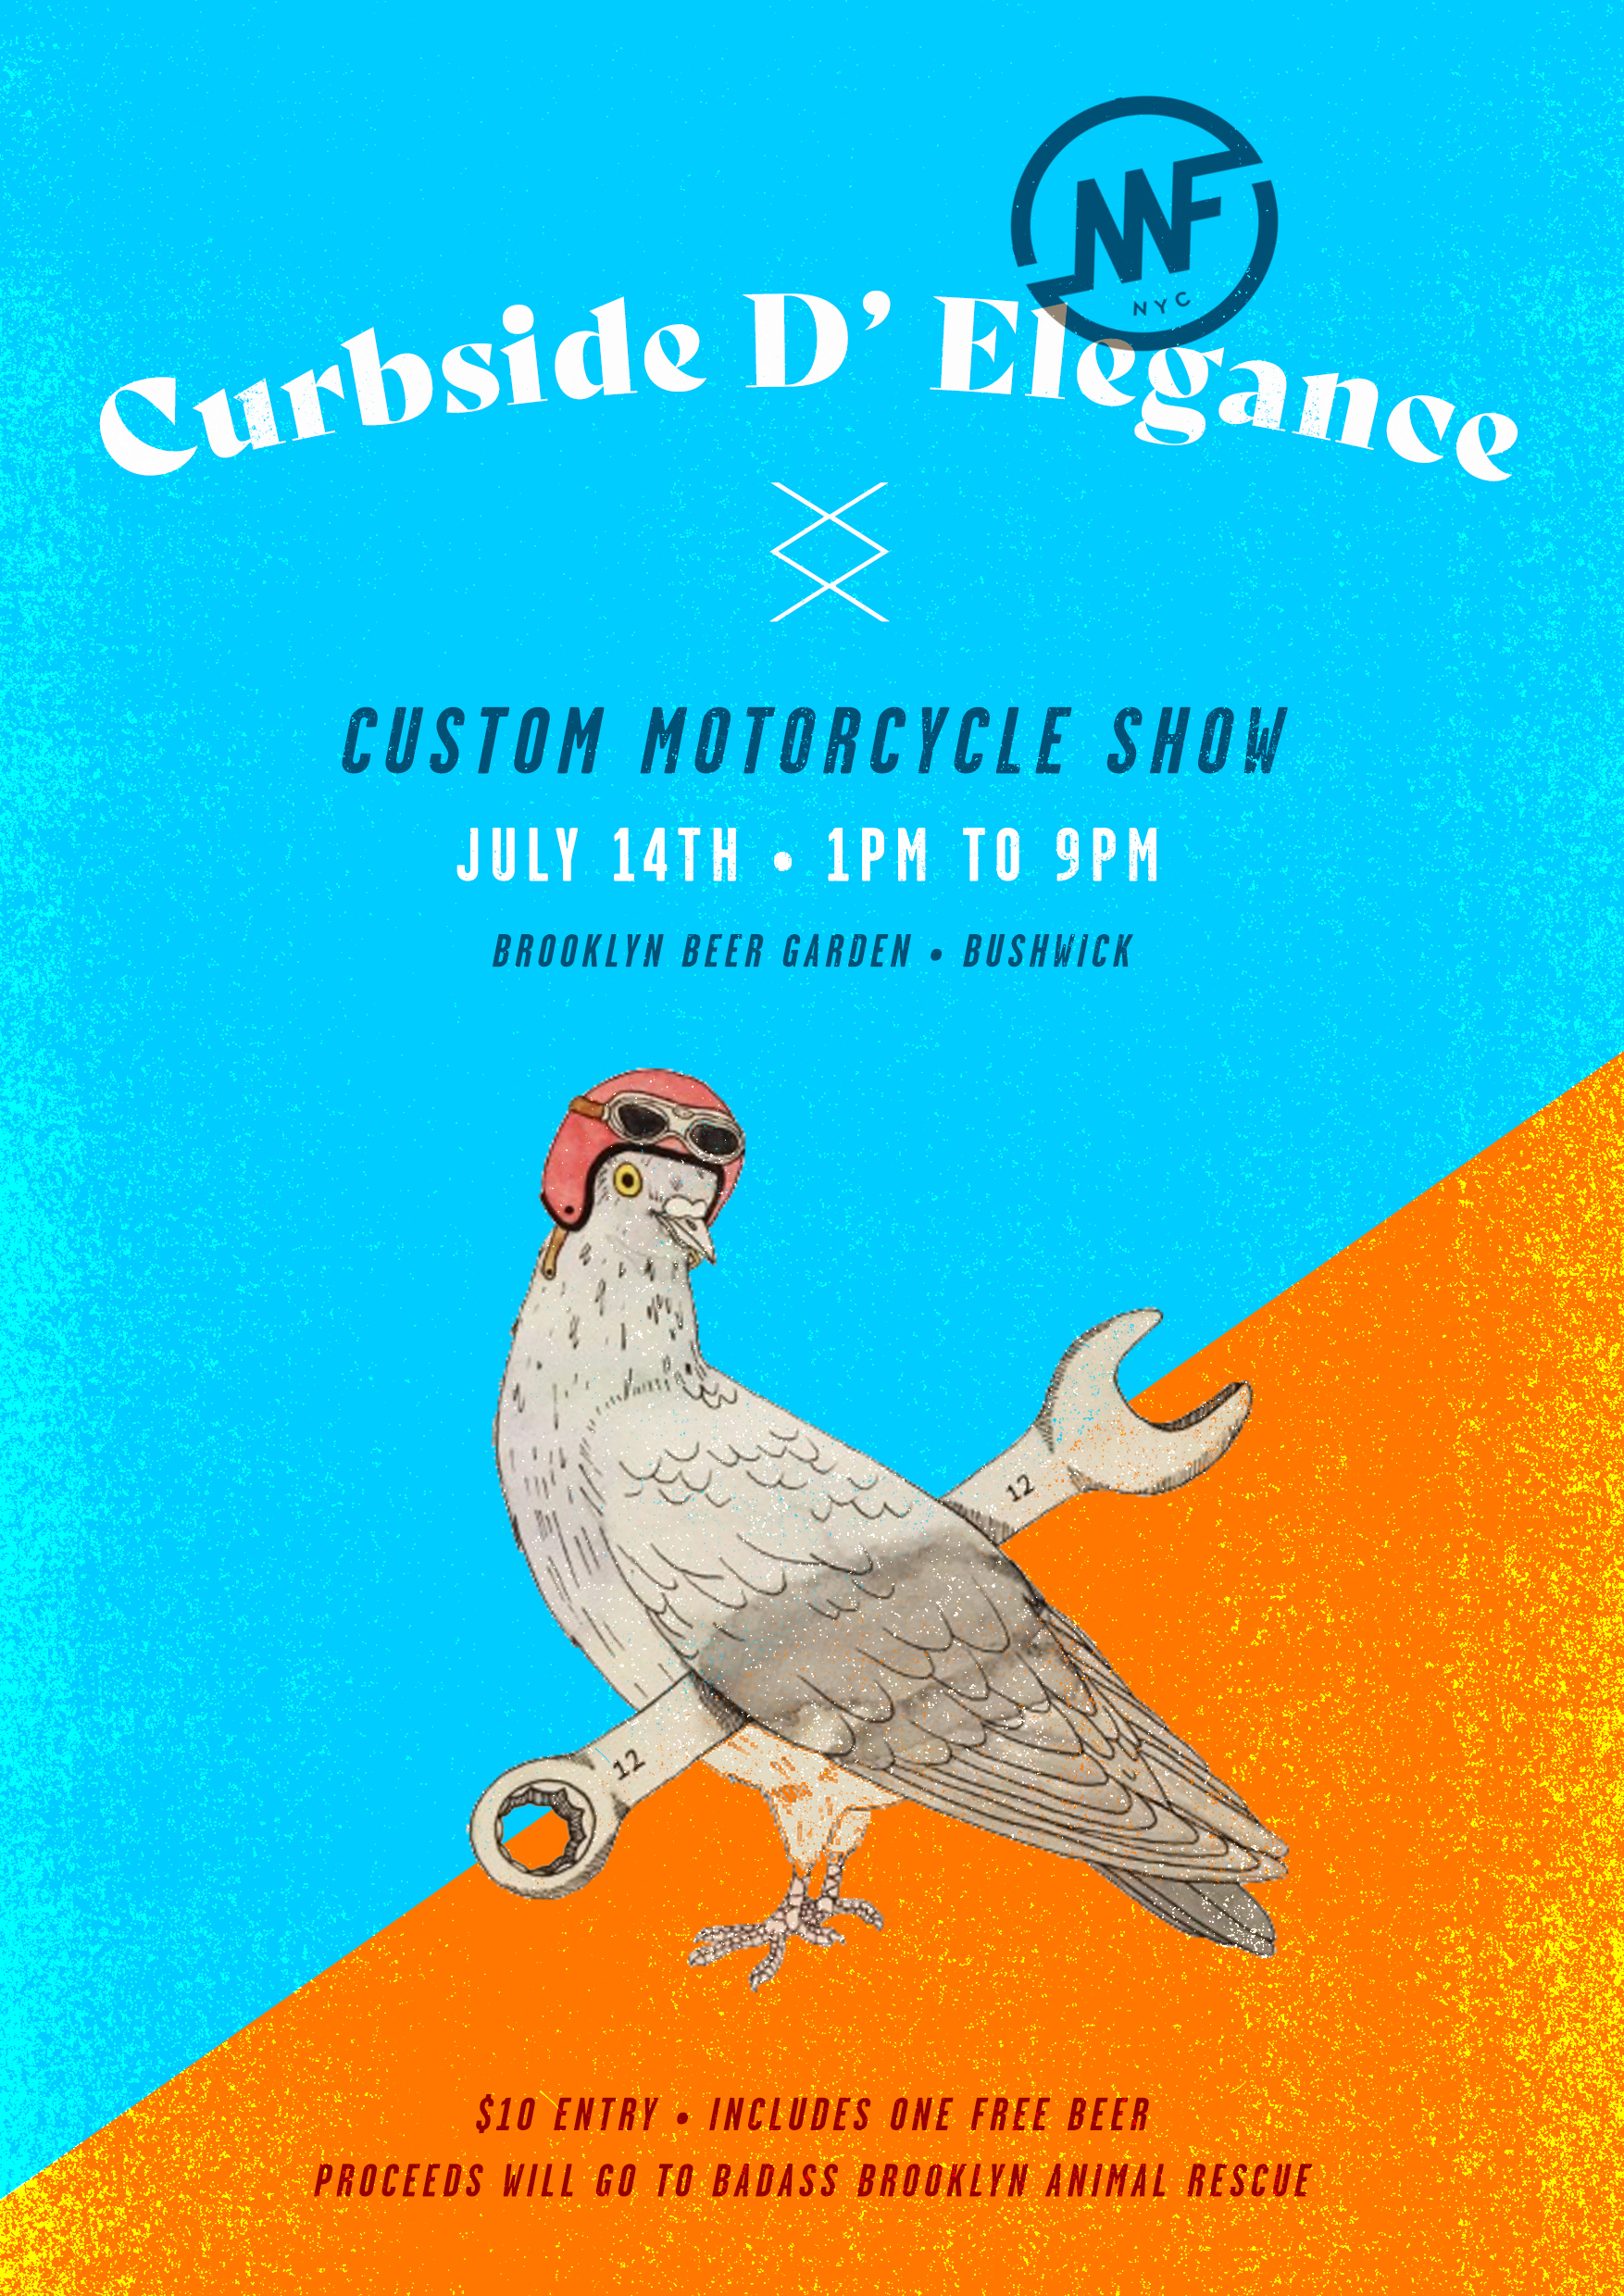 MotoFellas presents the Curbside D'Elegance custom bike show - July 14th at the Brooklyn Beer Garden in Bushwick. It is an inspiring exhibition of custom motorcycles created by variety of builders, expanding from backyard wrenchers to professional builders. Trophies will be given to best pro build, best amateur build and people's choice. Think your bike has what it takes? Submit your bike NOW! Accepting submissions from all professional and amateur builders in the North East! $10 covers your entry fee and your first beer. Proceeds will go to our furry friends at Badass Brooklyn Animal Rescue.